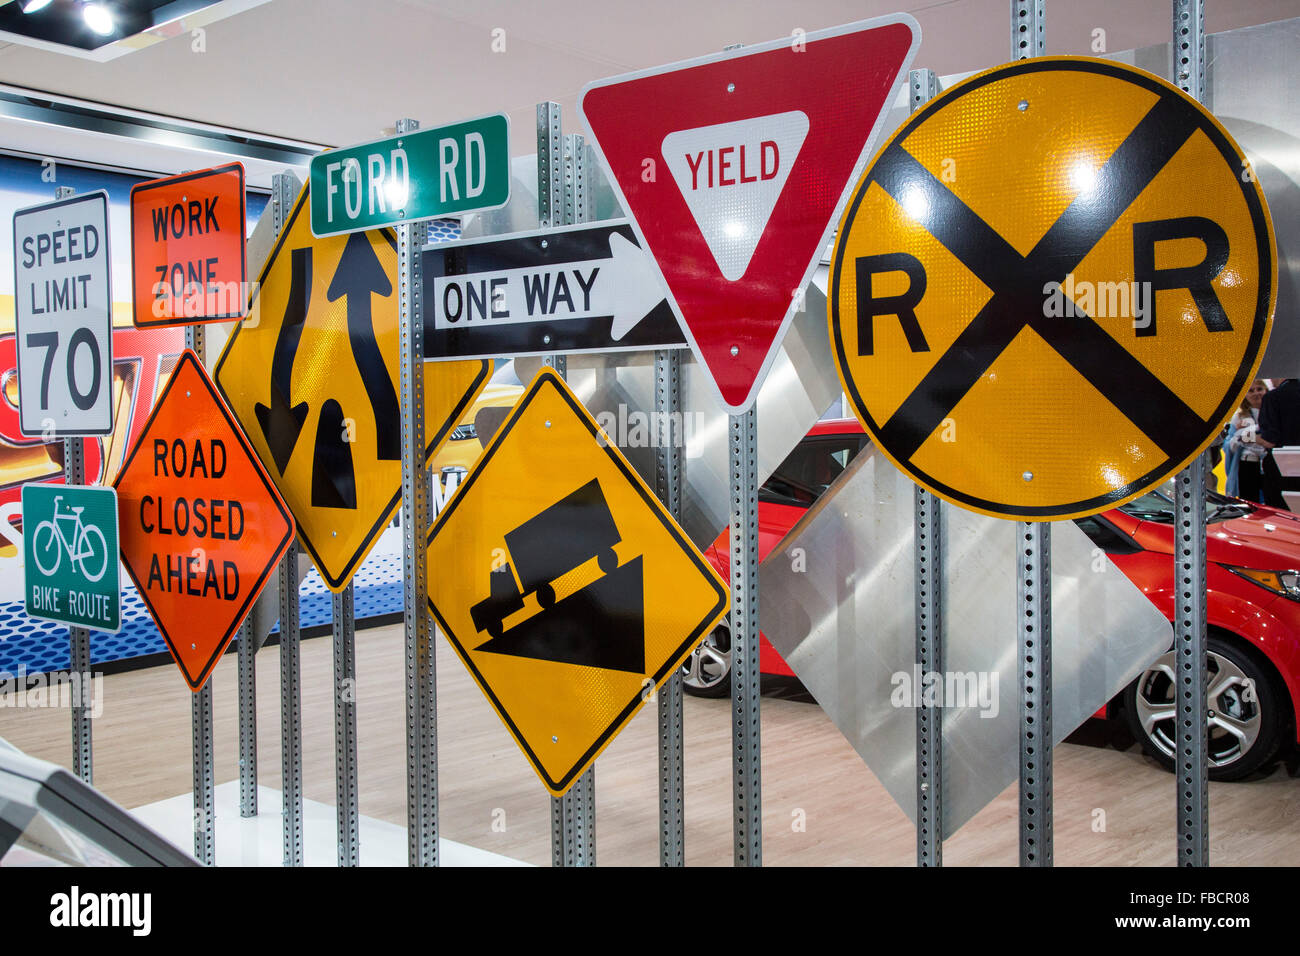 Detroit, Michigan - Road signs in the Ford display at the North American International Auto Show. - Stock Image